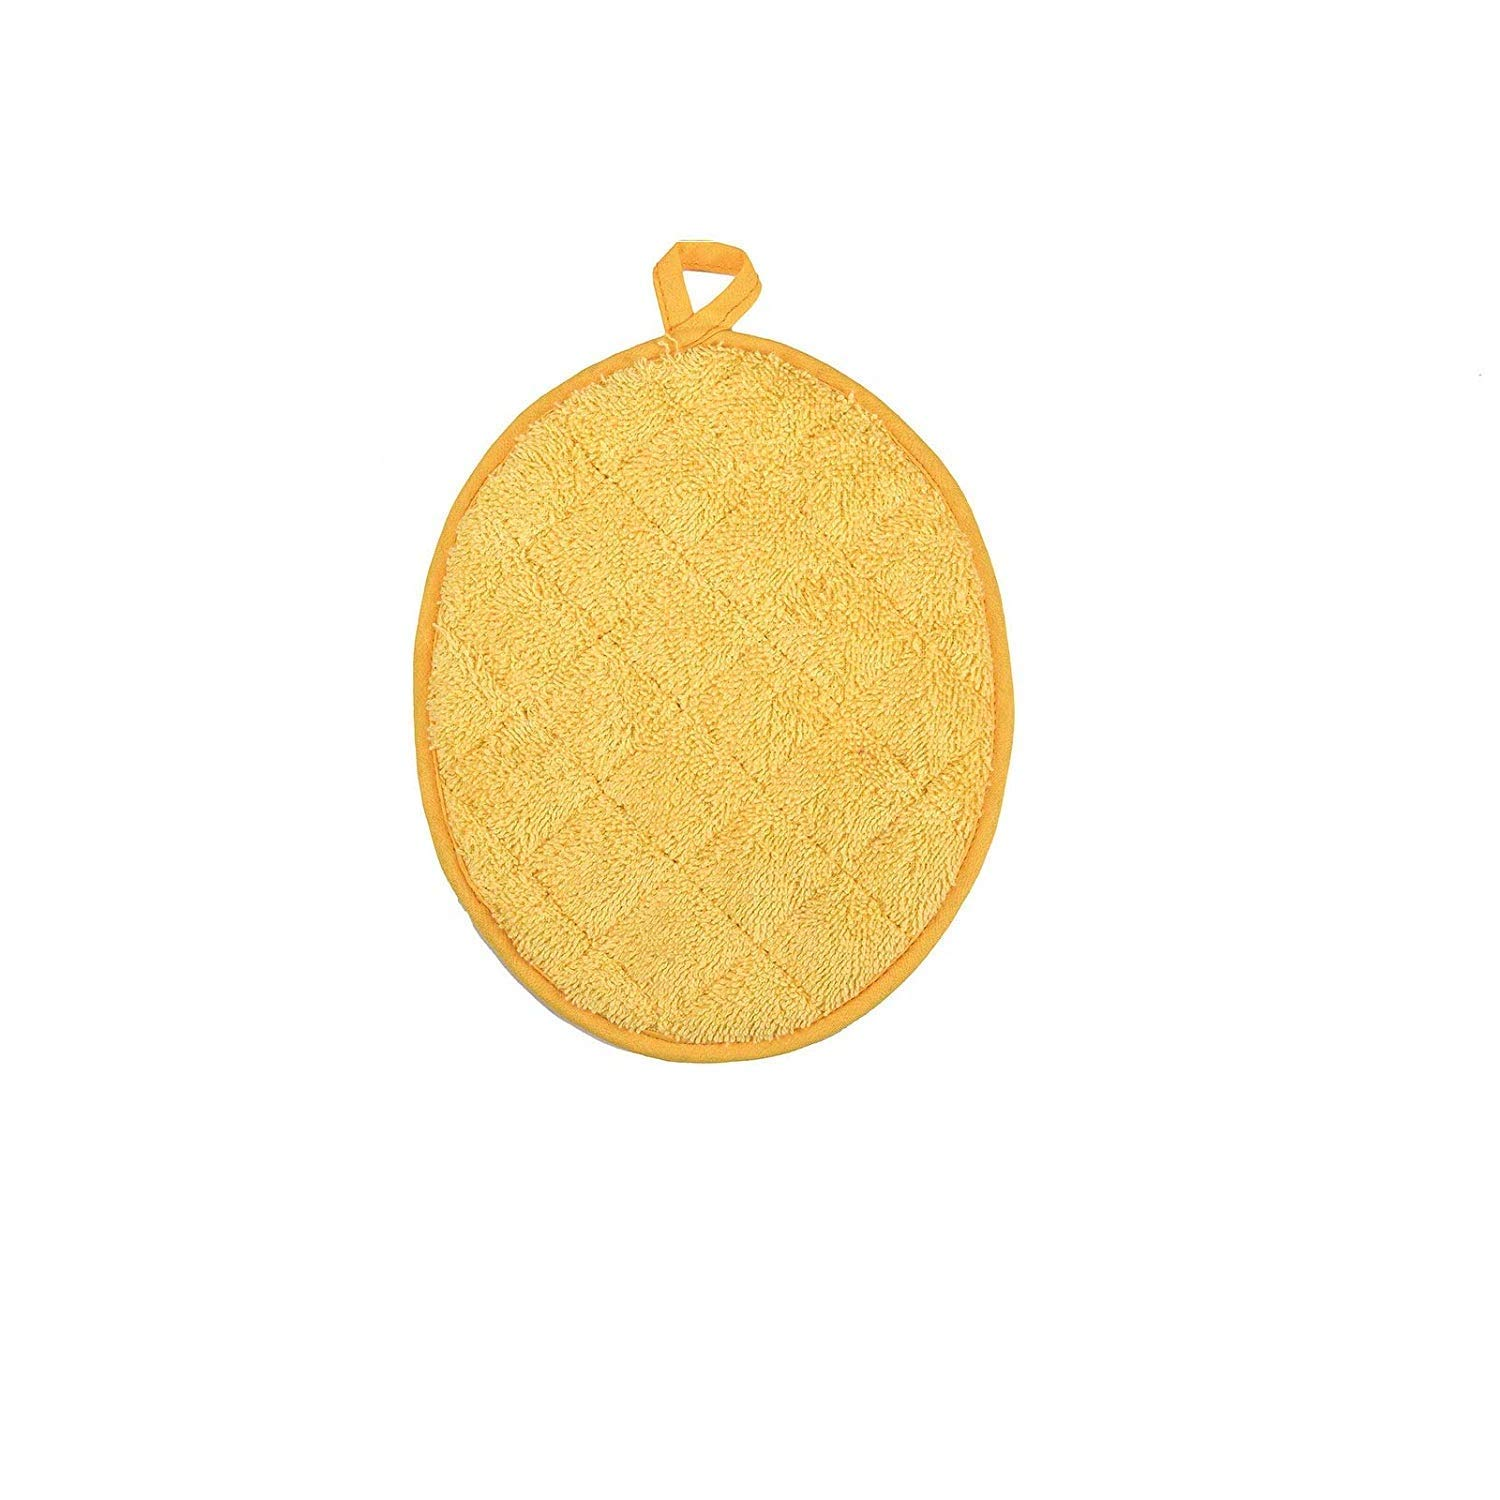 AP Collection Terry Cotton Heat Resistant Oval Pot Holder for Cooking and Baking Size 9.5 x 7.5 Inches (Pack of 5, Yellow)